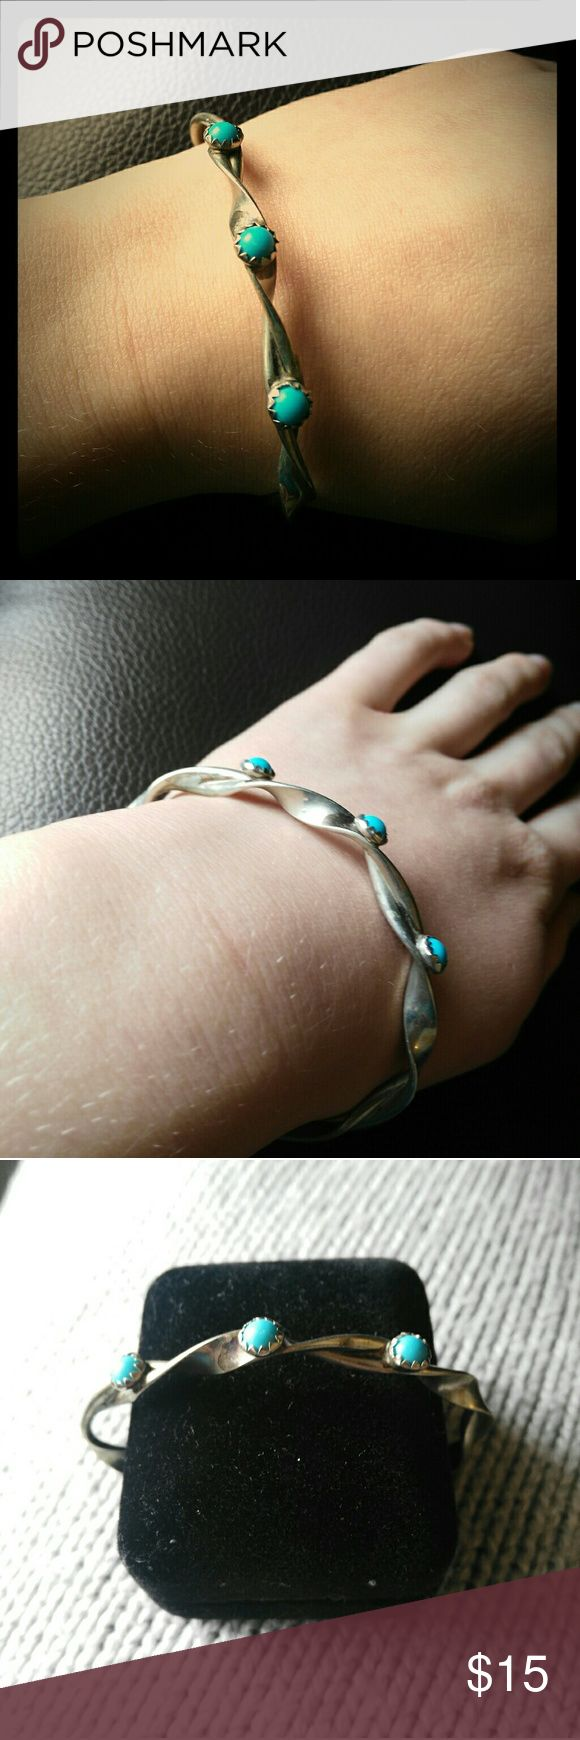 Twisted hand made turquoise bracelet Got in New Mexico, hand made and twisted. A very unique piece. Don't let this pass you by. This would be perfect to wear it with tribal leggings and a loose white shirt and ankle boots. Handmade Jewelry Bracelets